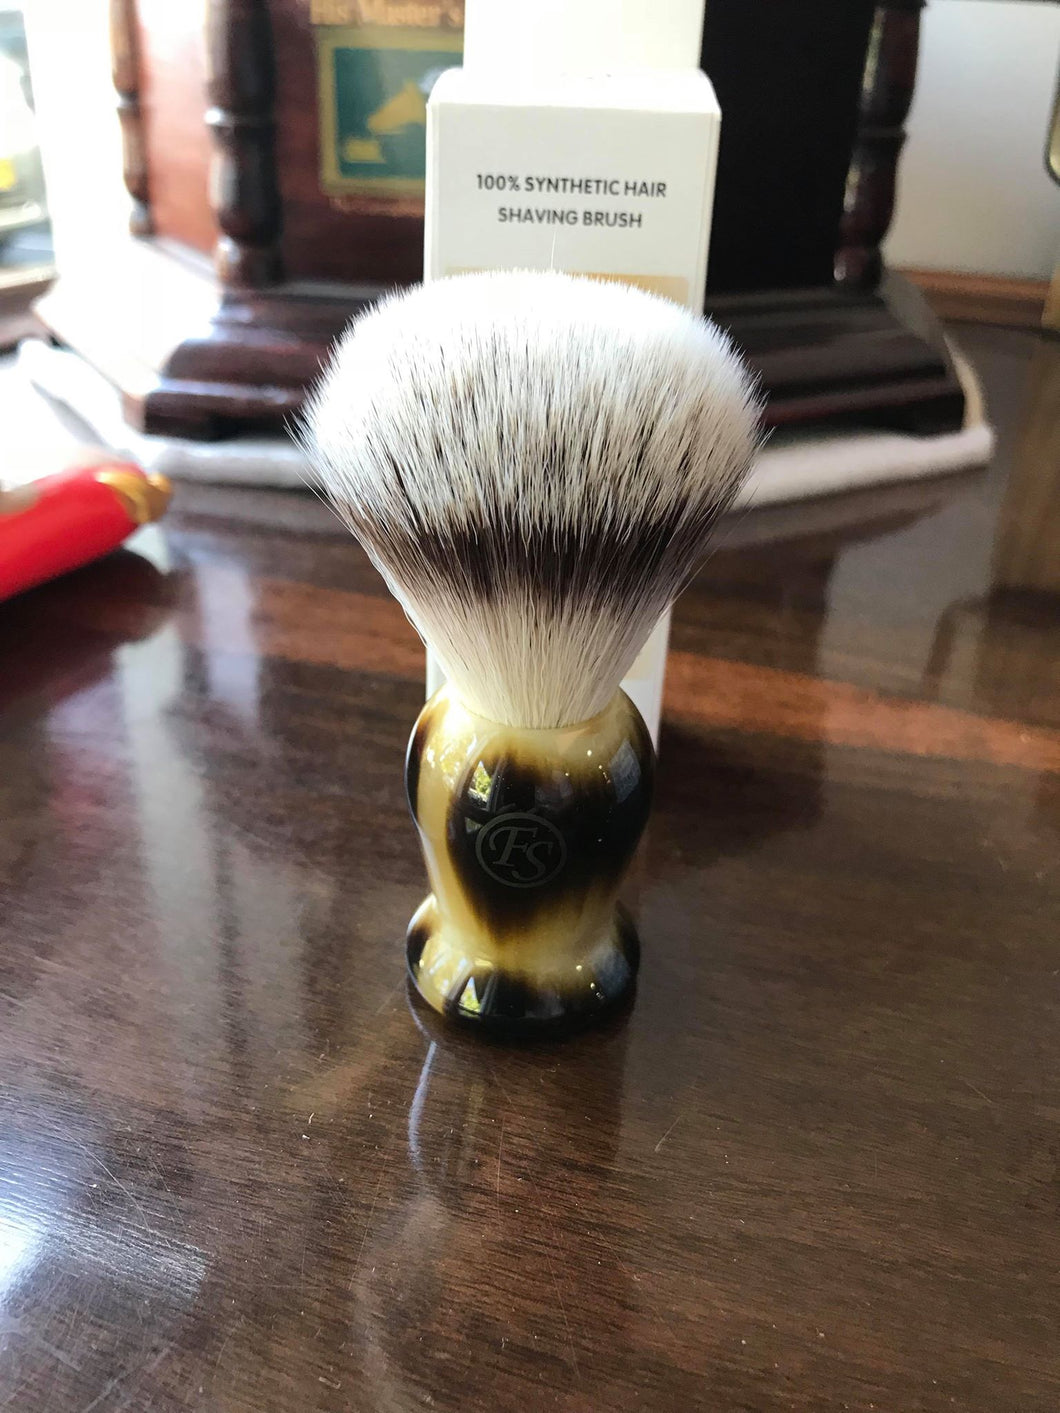 FRANK SHAVING SYNTHETIC FAUX HORN SHAVING BRUSH SYS20-FH10 - Ozbarber